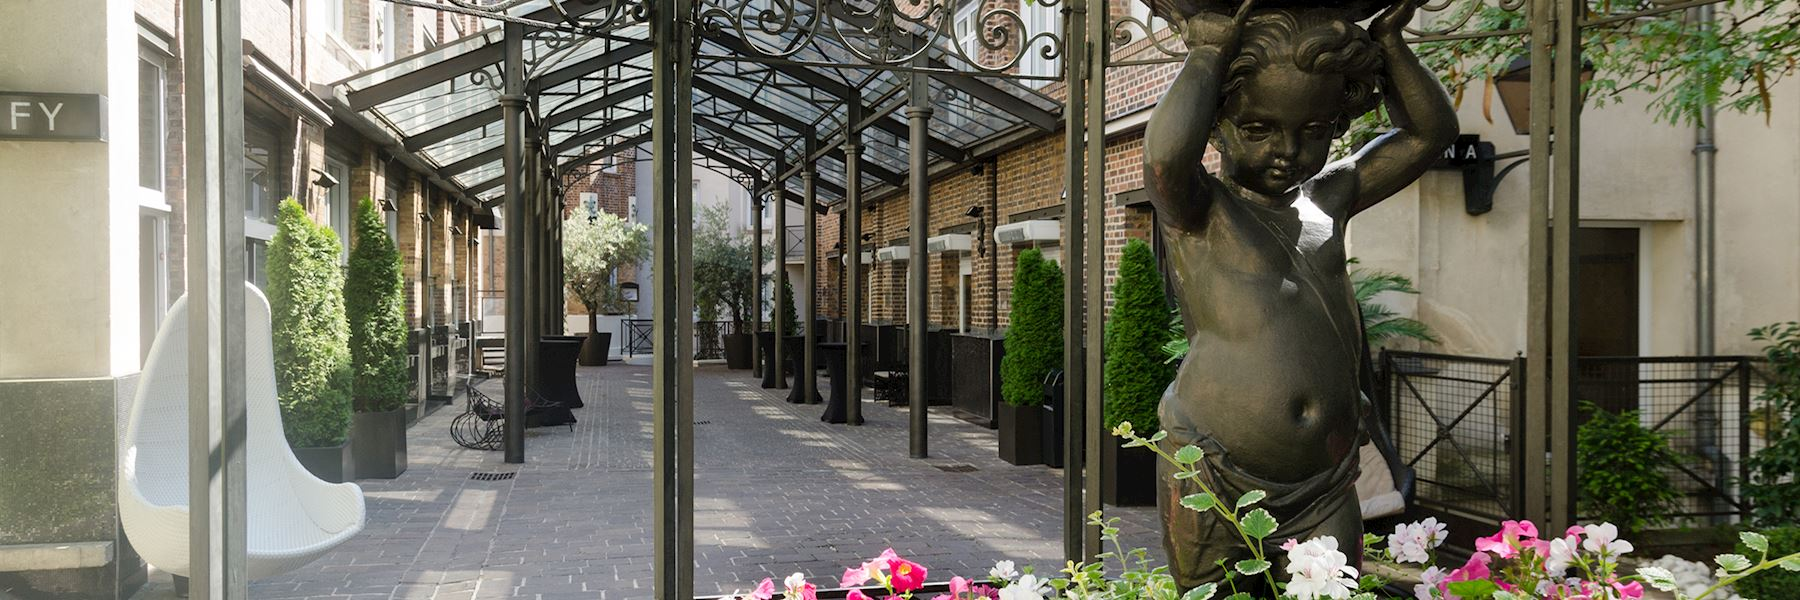 Les jardins du marais hotels in paris audley travel for Camping le jardin du marais